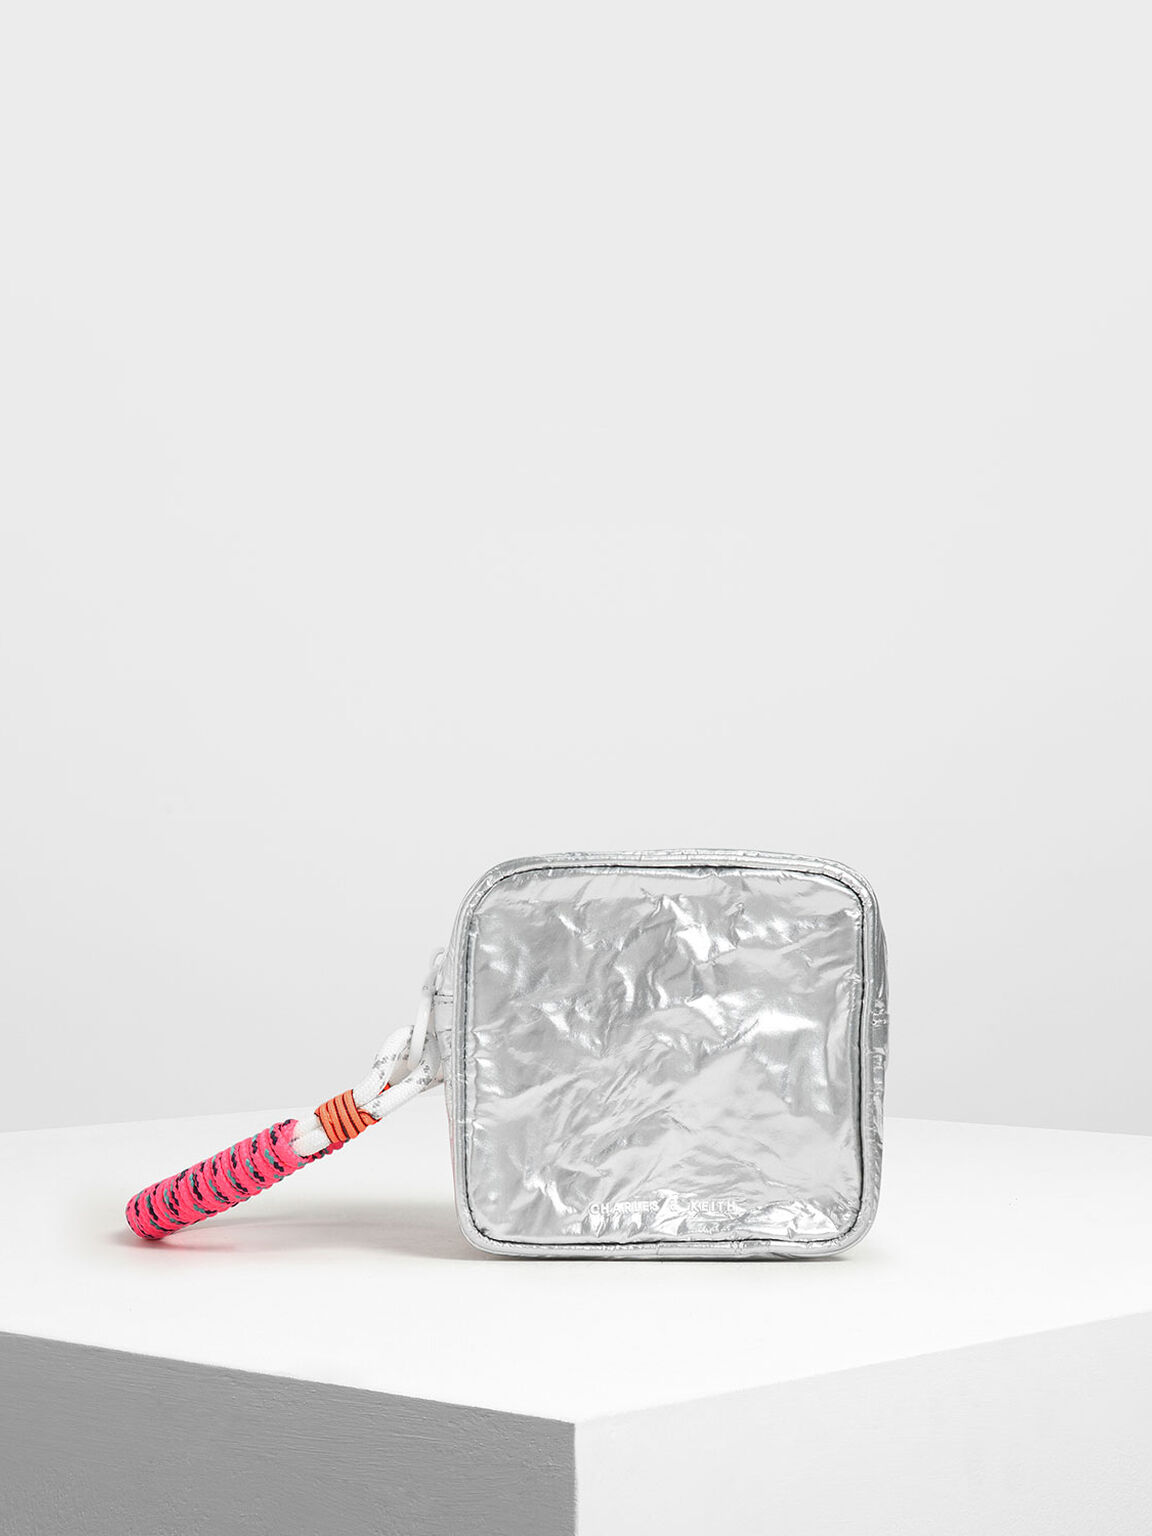 Crumpled Effect Zipper Pouch, Silver, hi-res